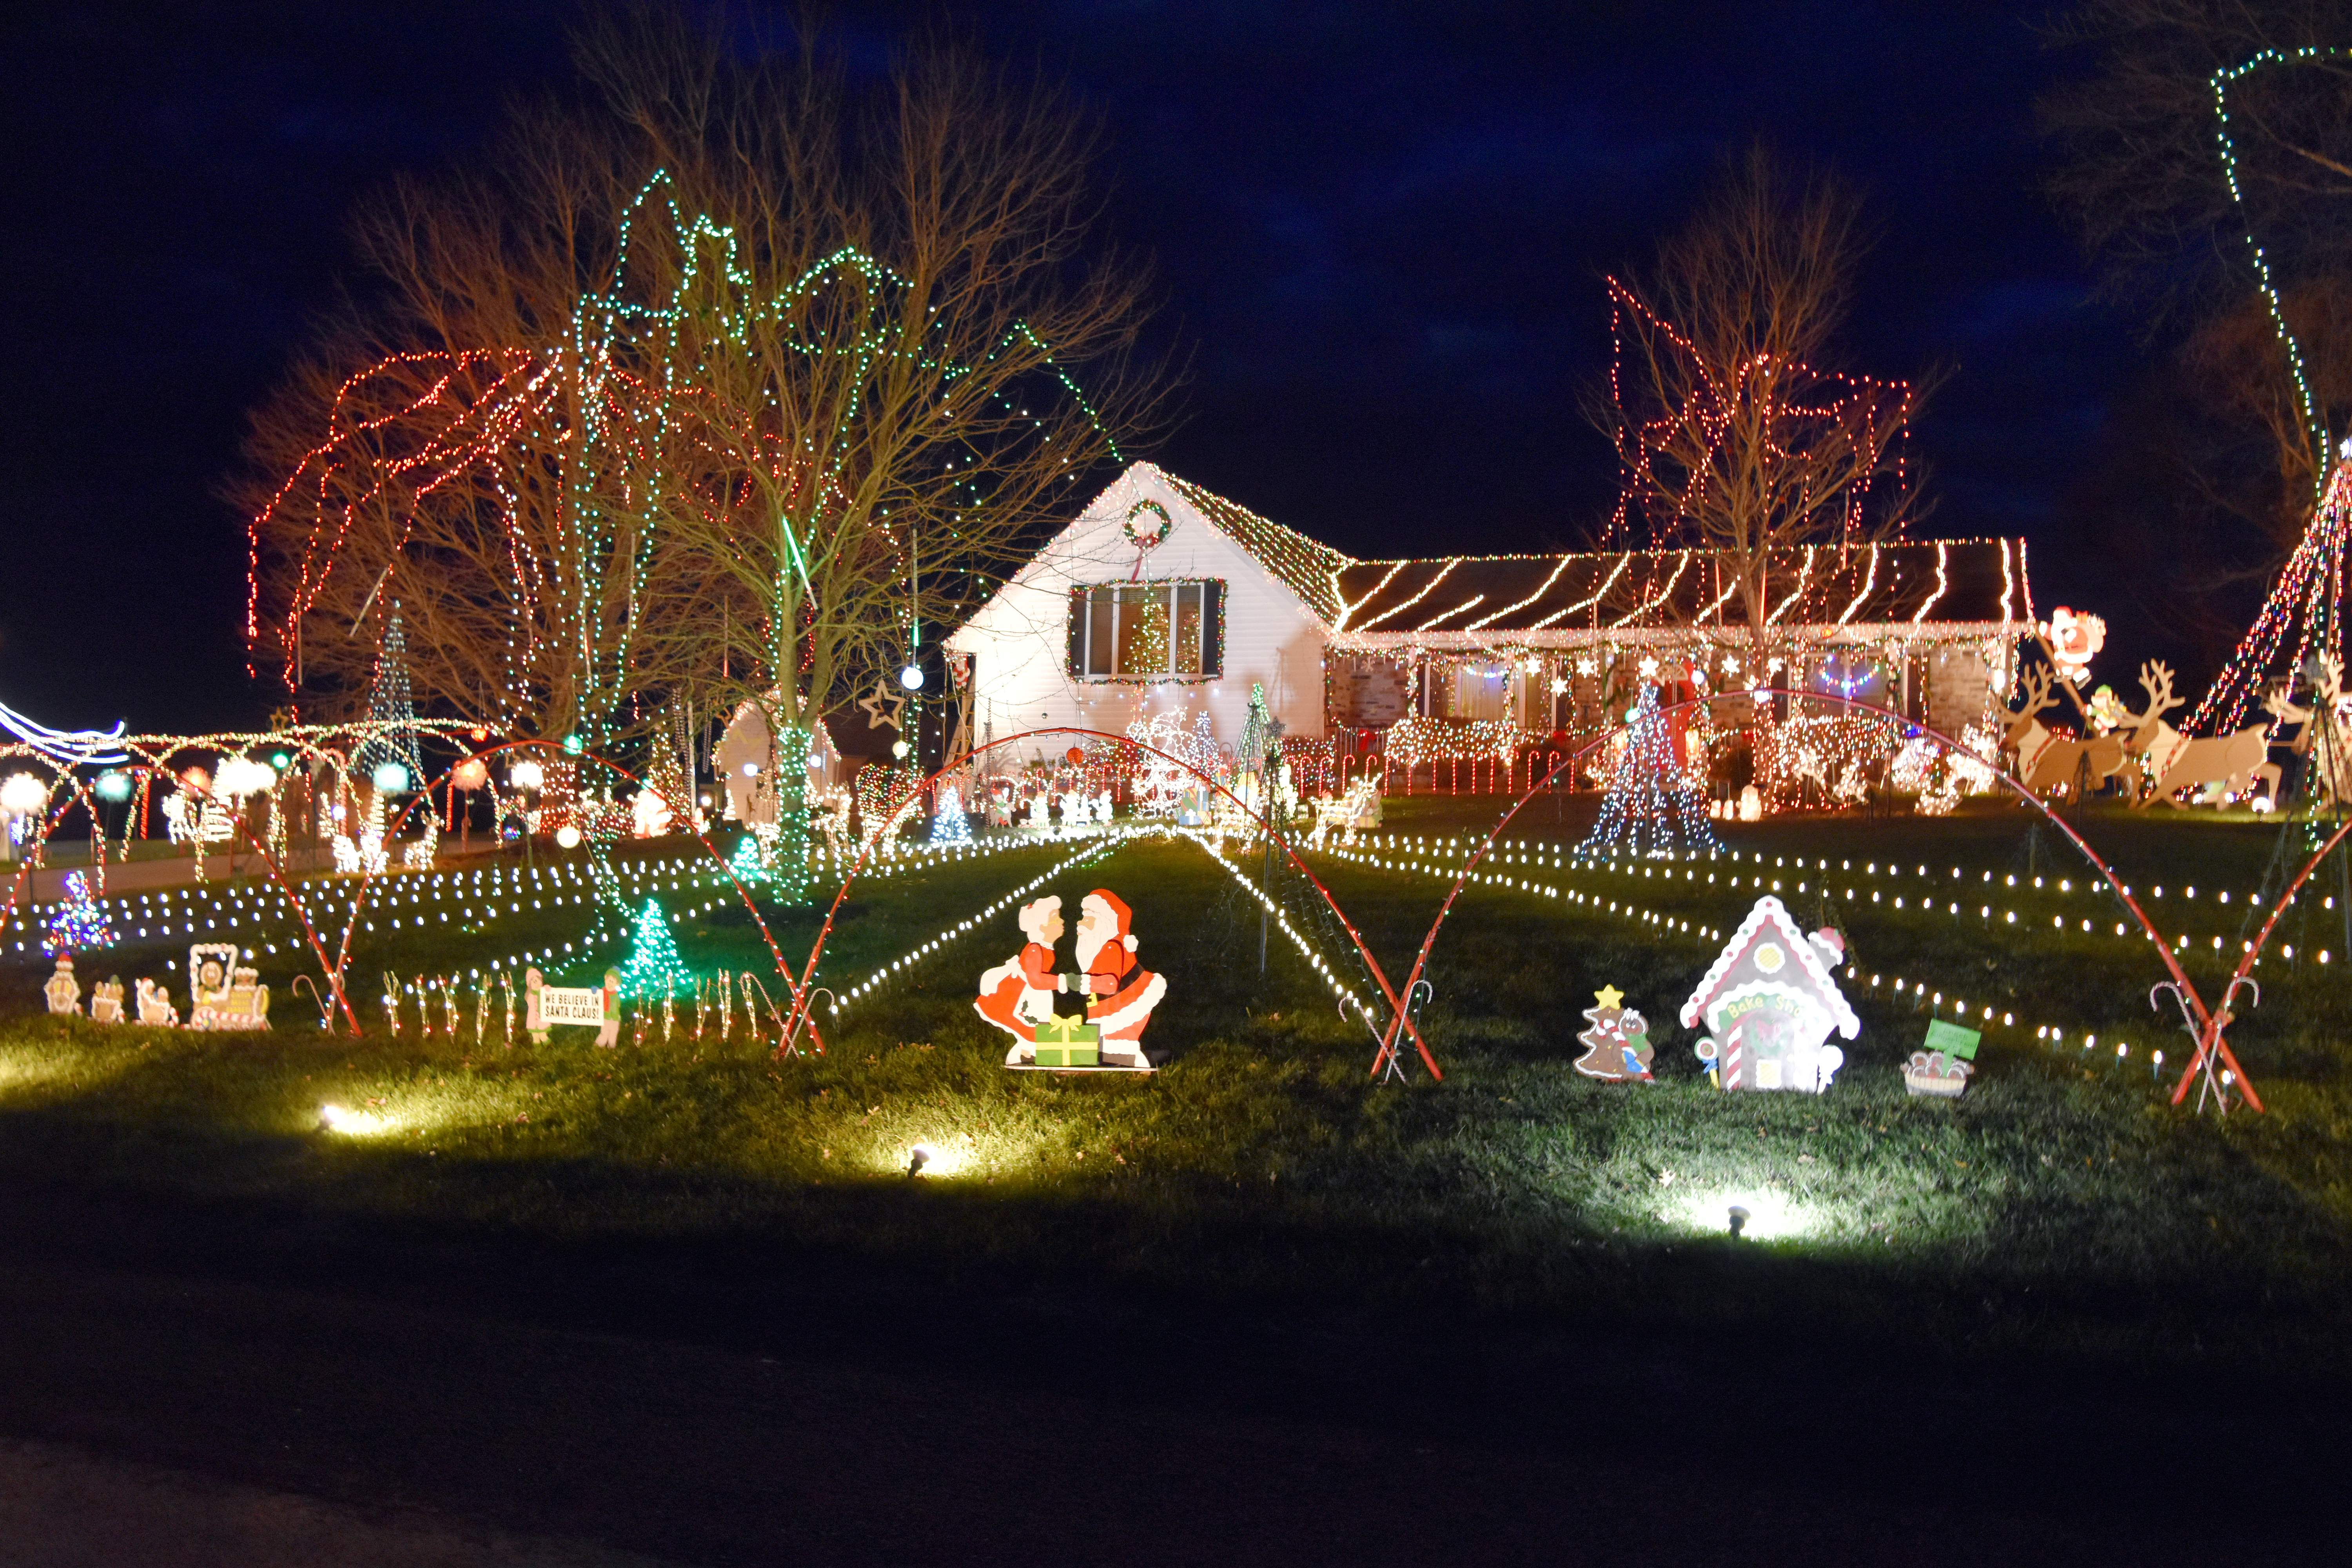 Pictured is Keith and Barb Kittel's home on Union School Road, which once again won first place in the Chester Chamber of Commerce holiday lighting contest.